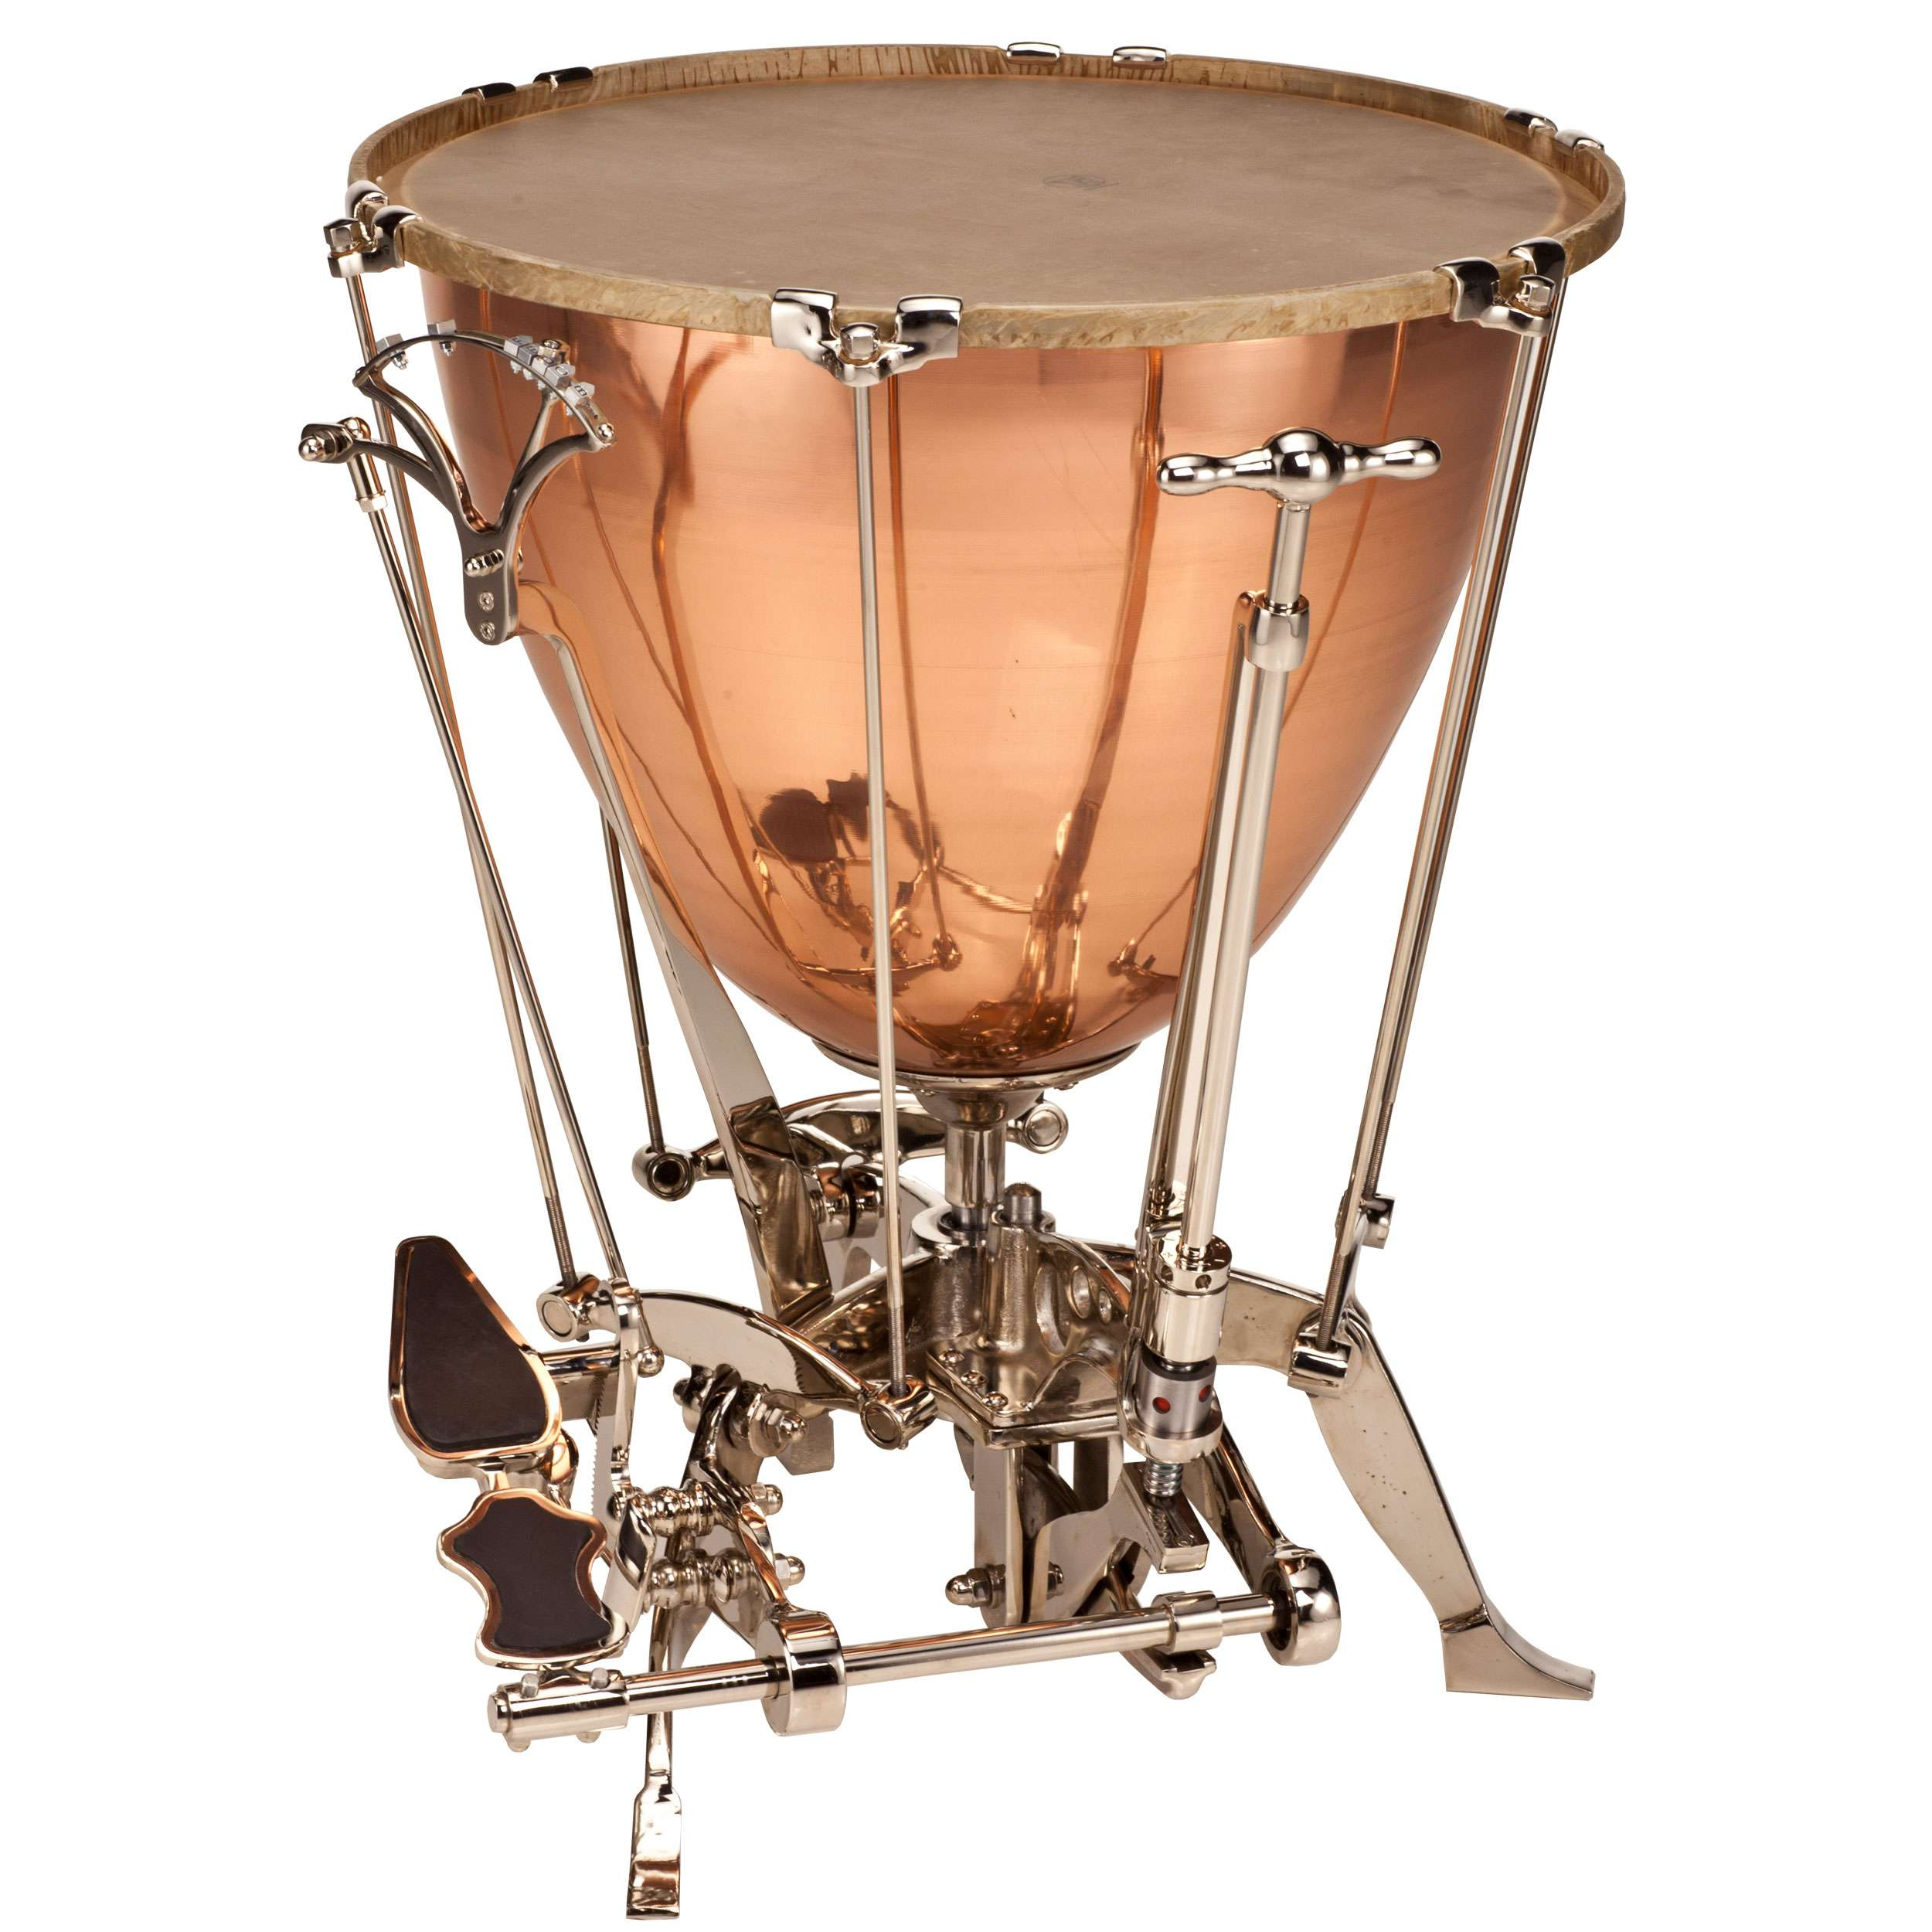 "Adams 23"" Schnellar Timpani with Kurbel (Crank) and Calfskin Head"